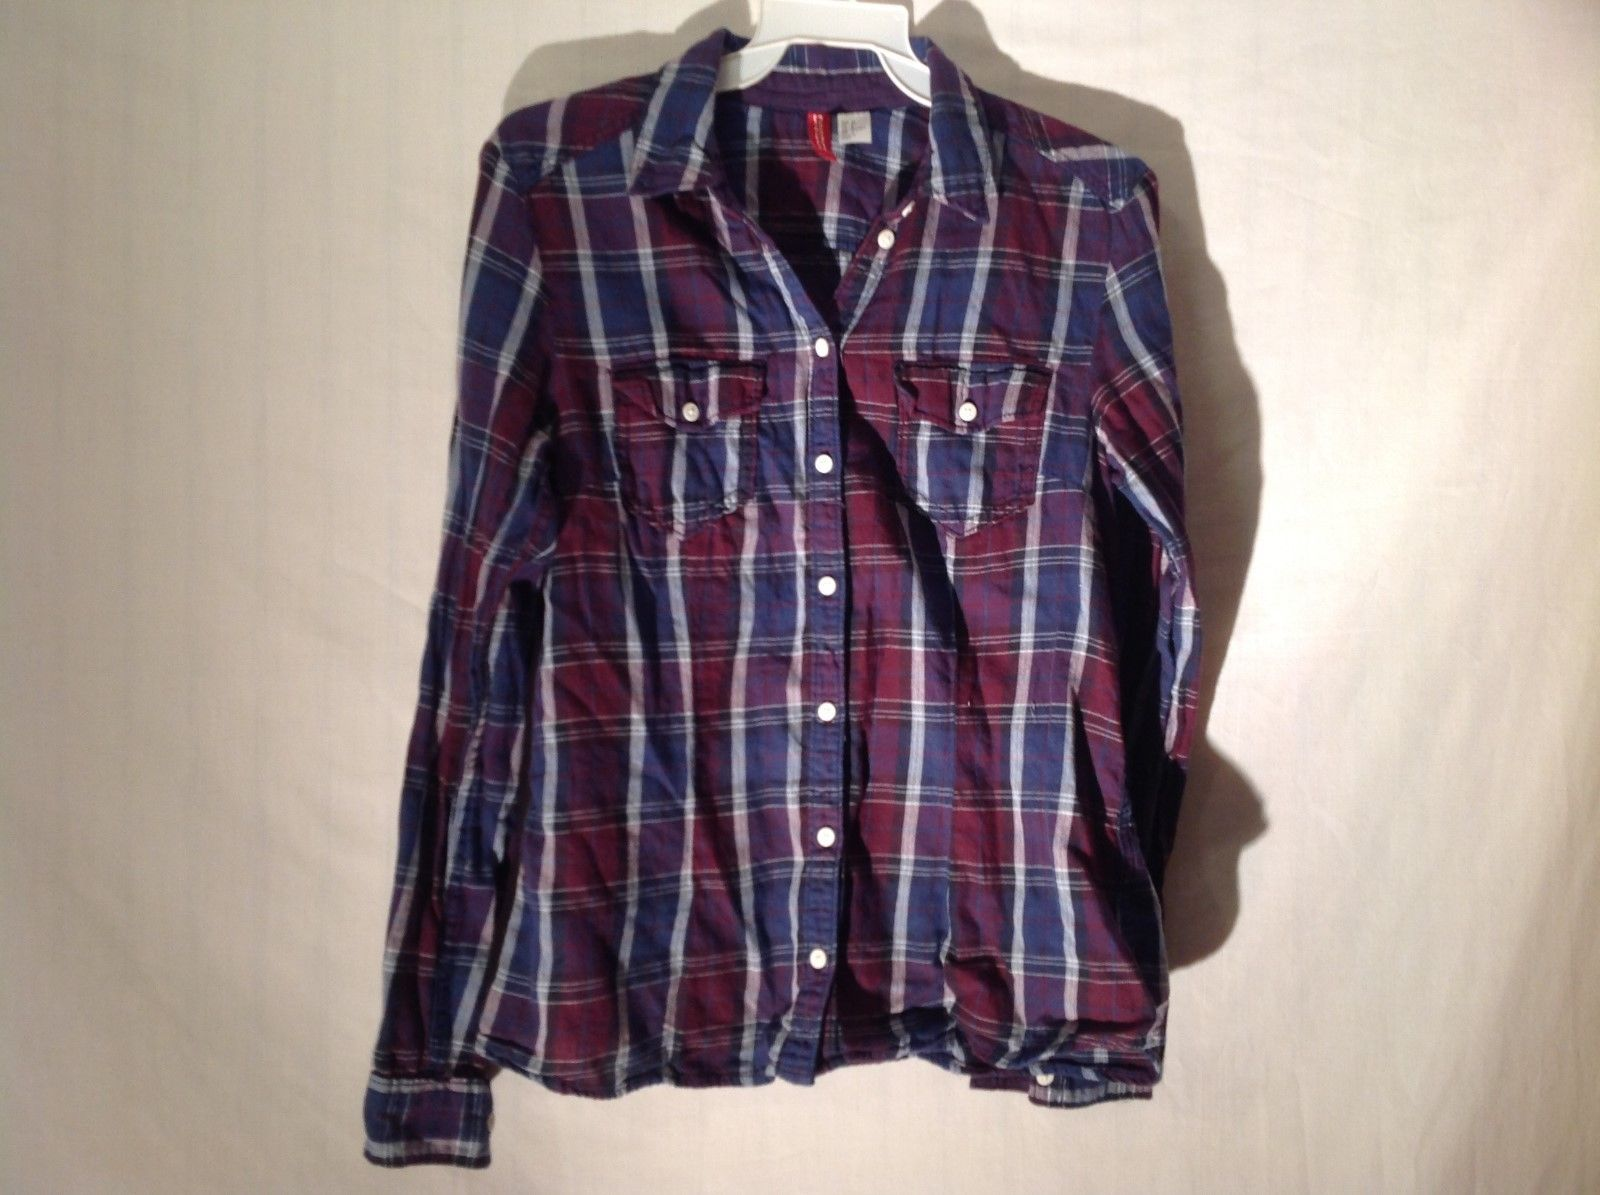 Diveded by H&M woman's plaid long sleeve shirt